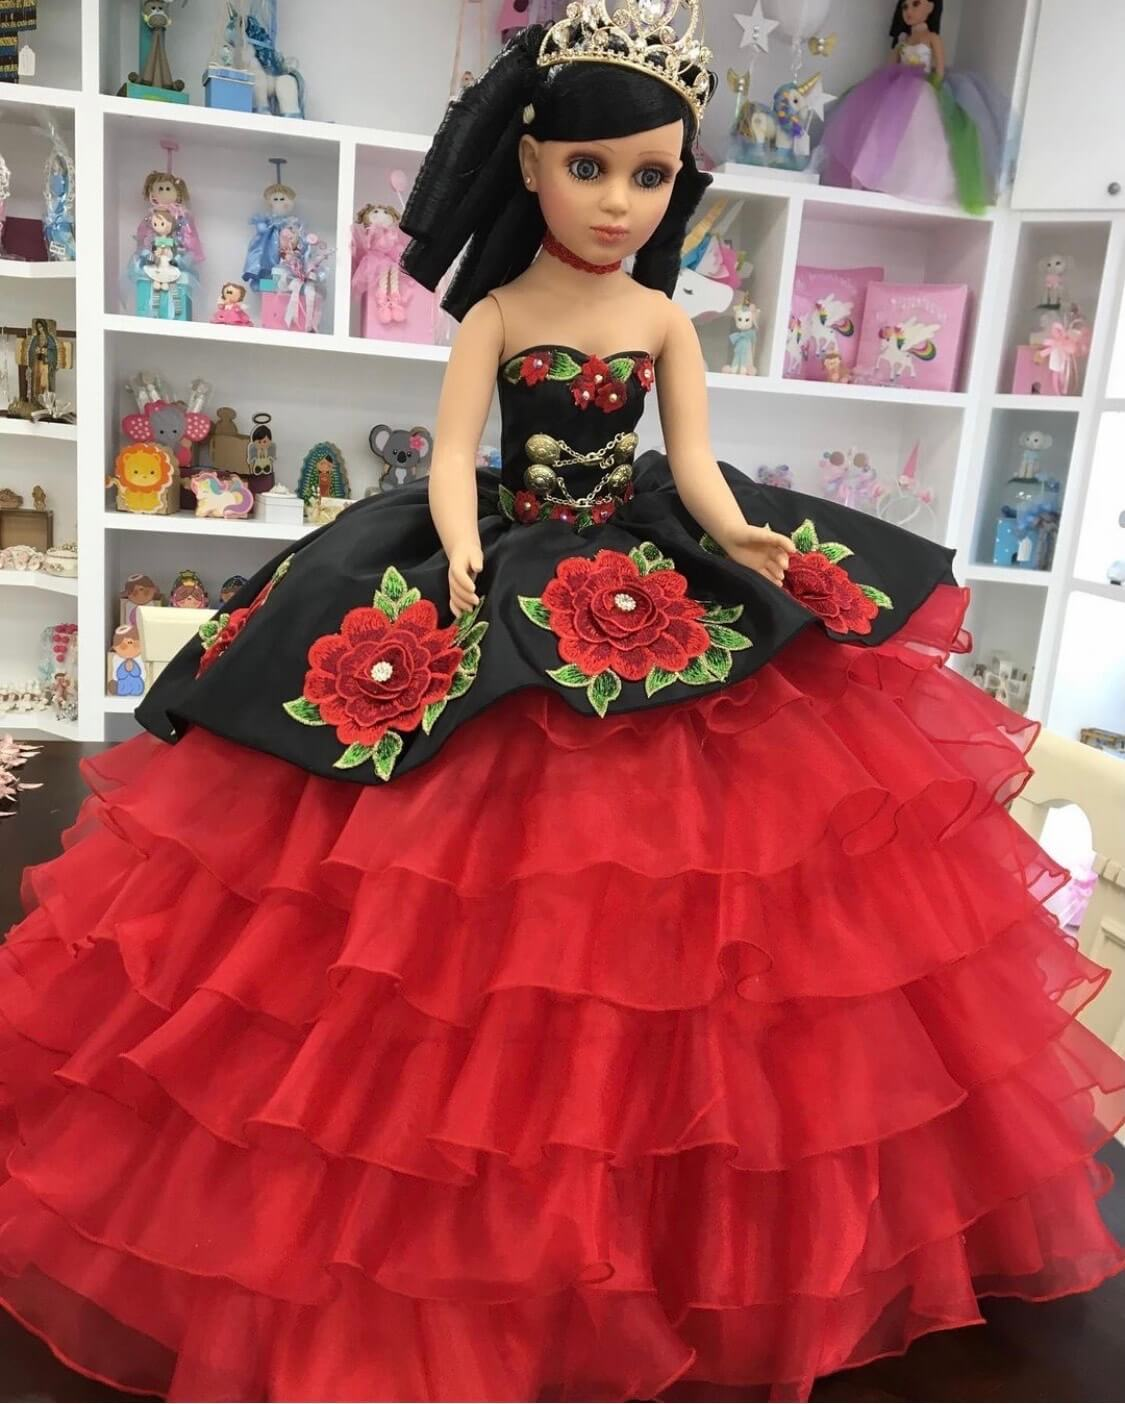 Doll or Bear in Charra Red Dress with Black